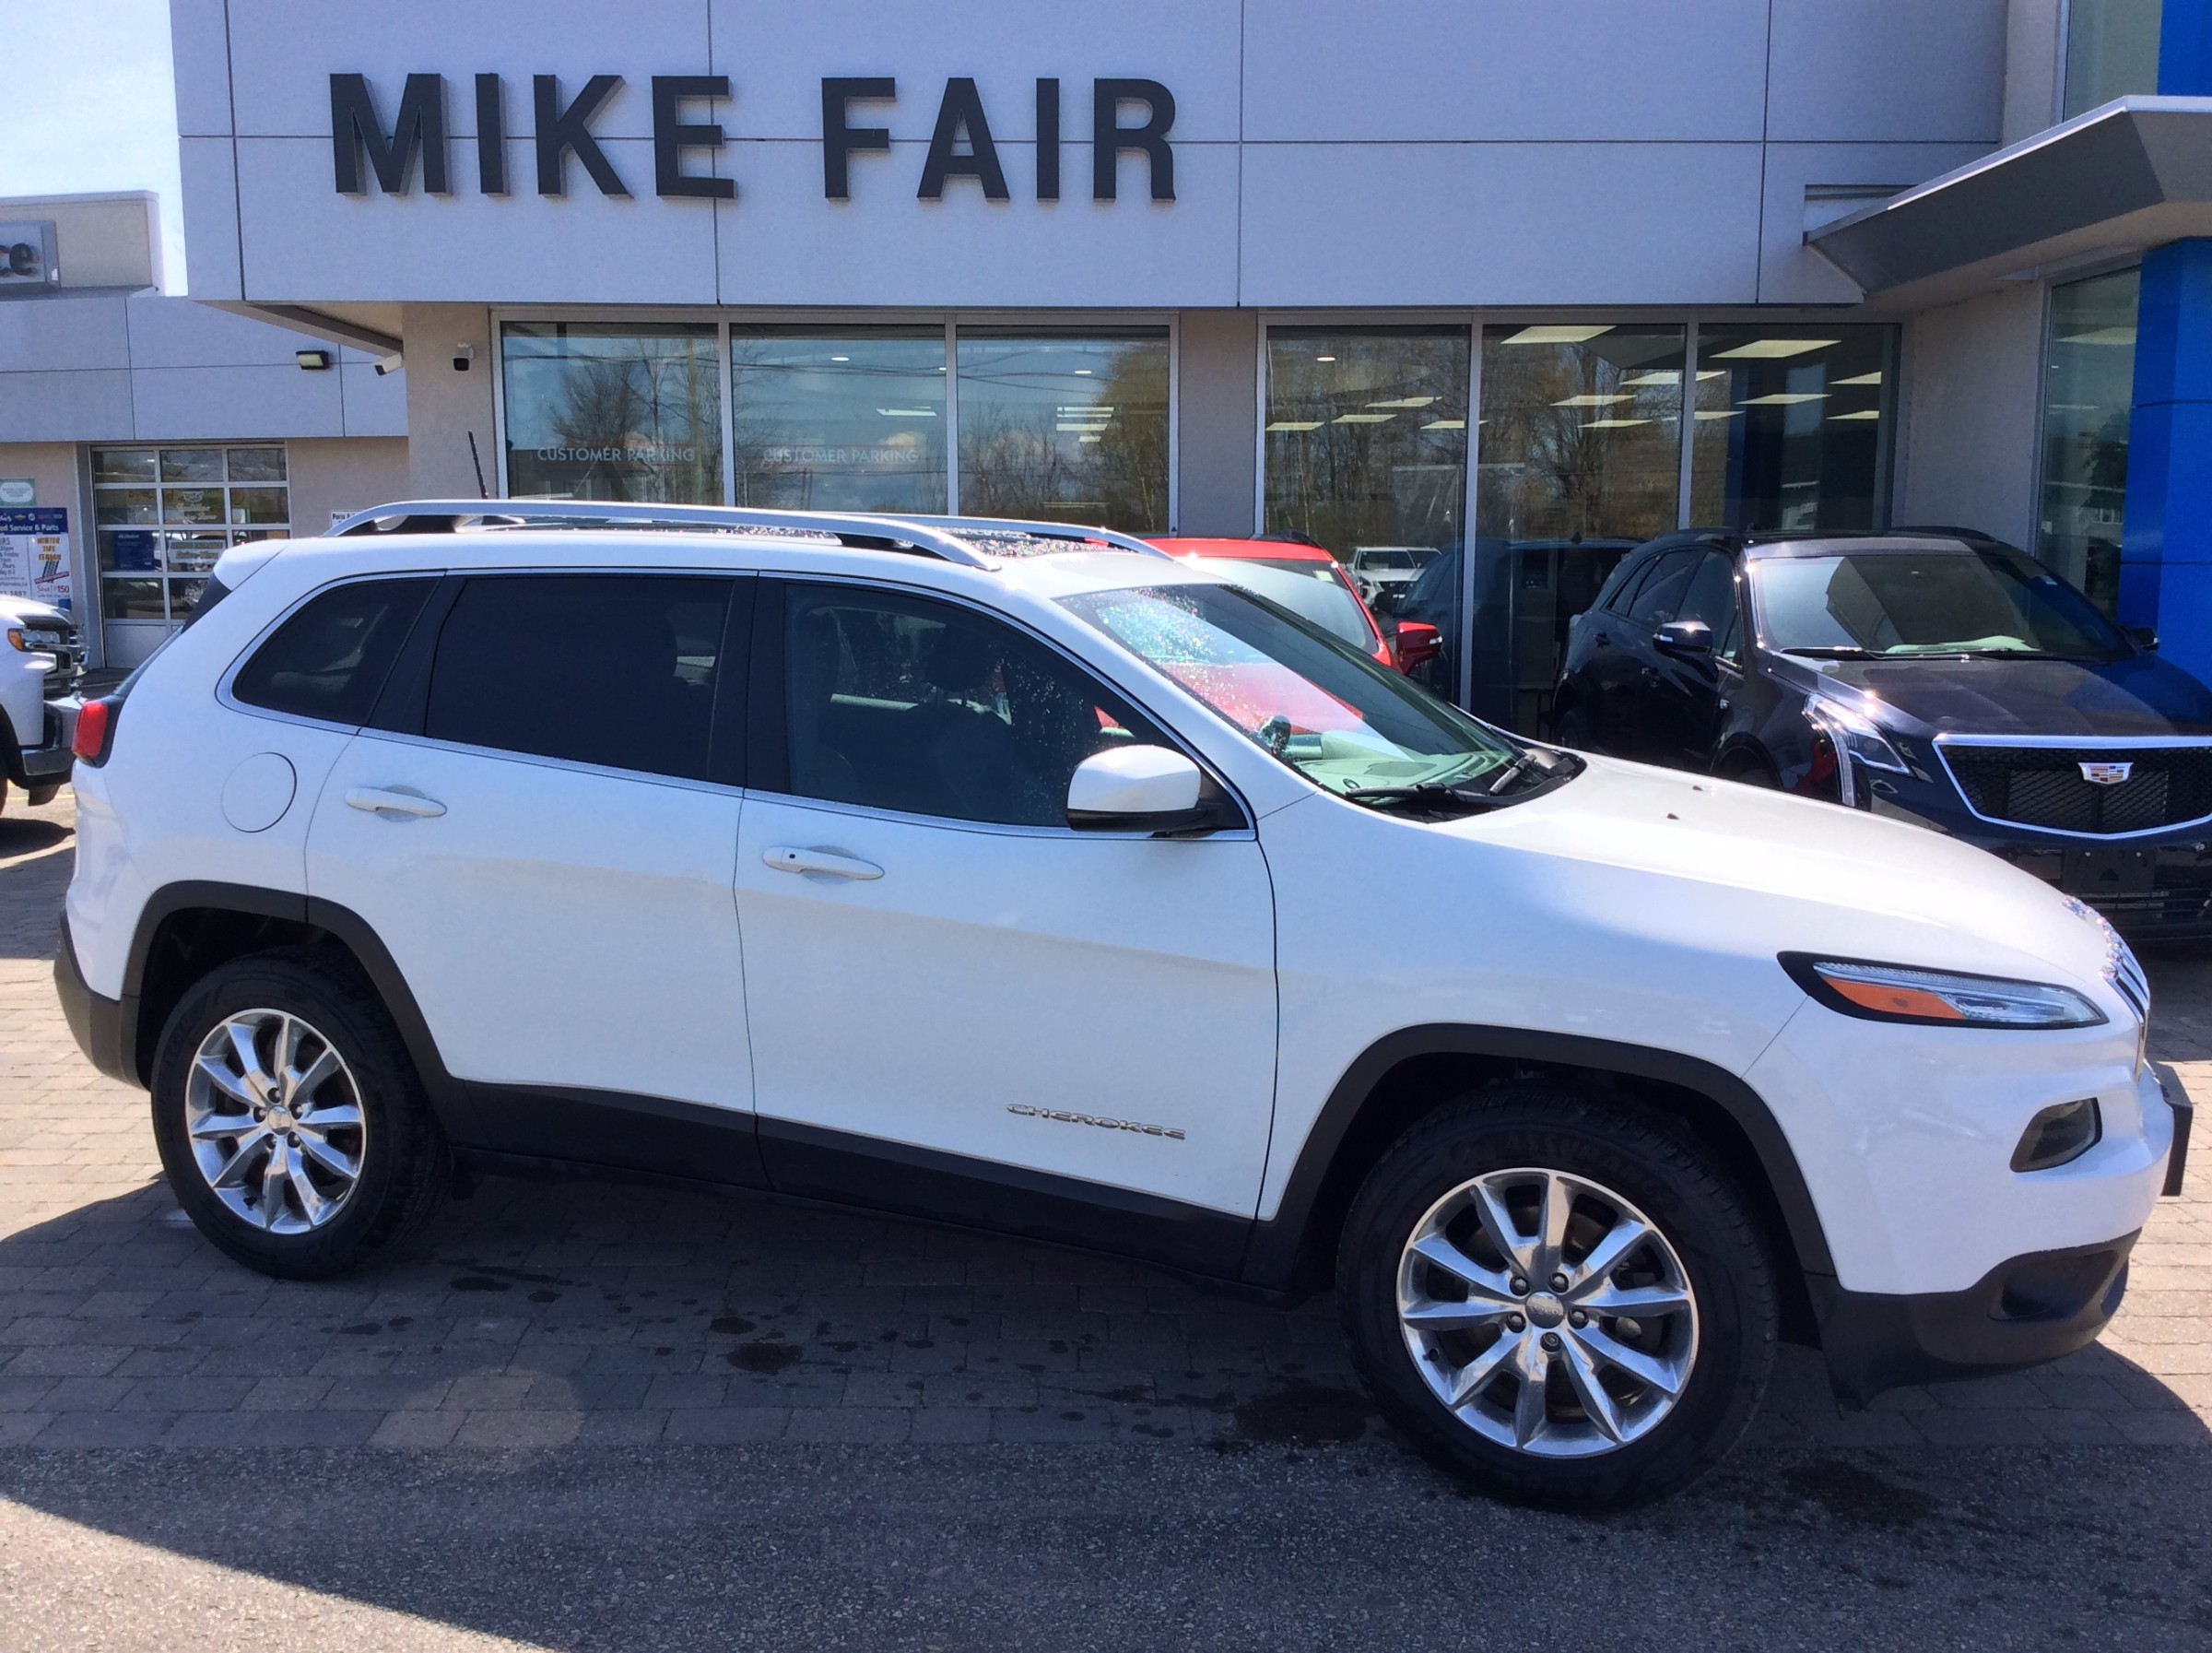 2016 Jeep Cherokee Limited - 70,250km